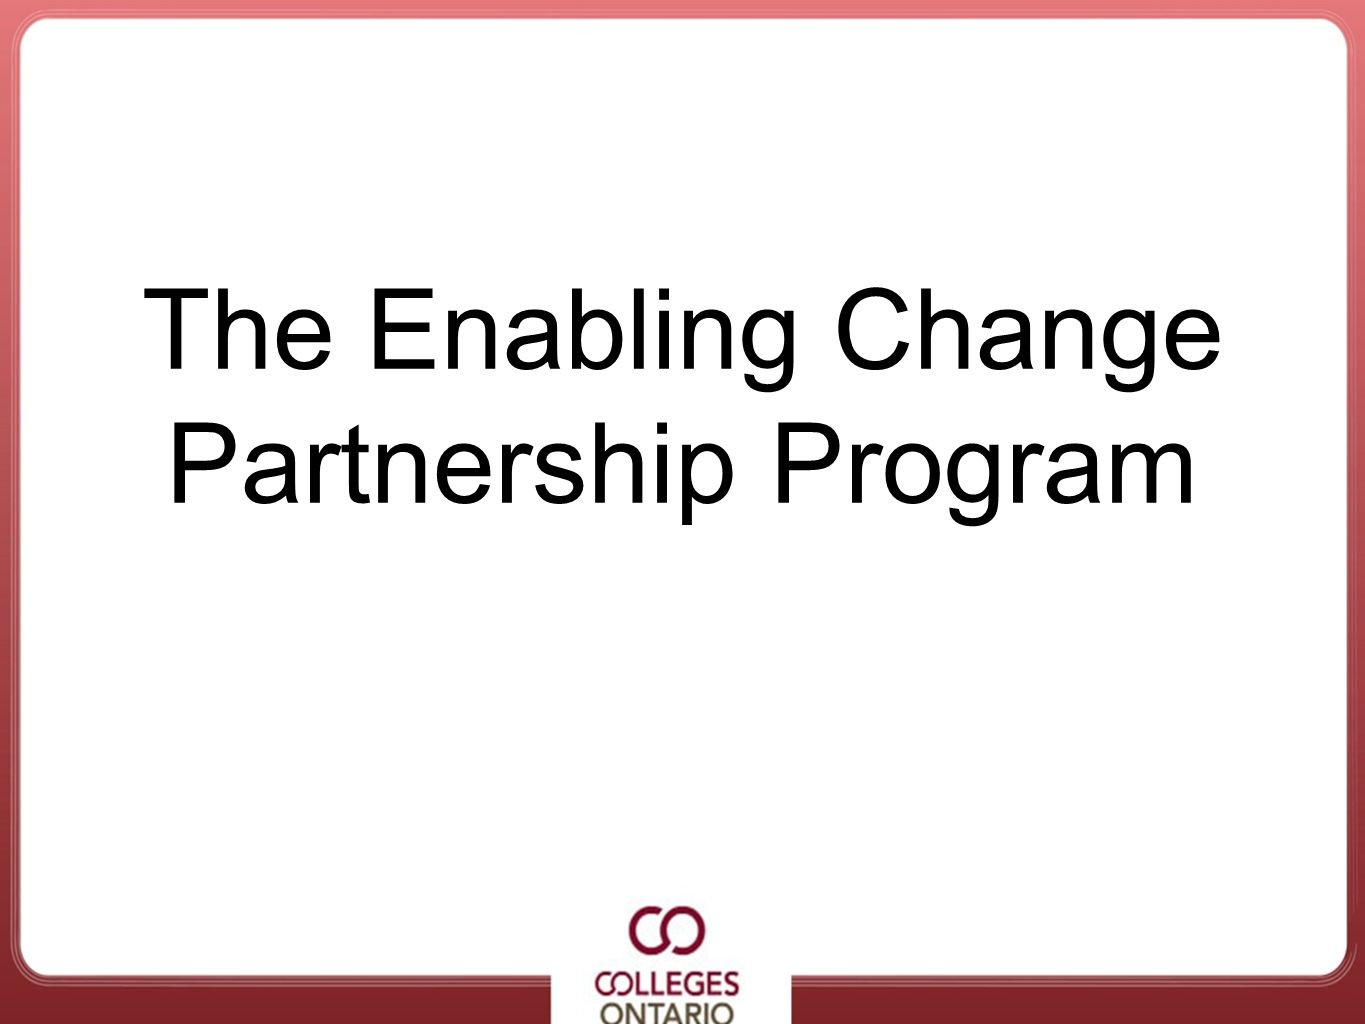 The Enabling Change Partnership Program